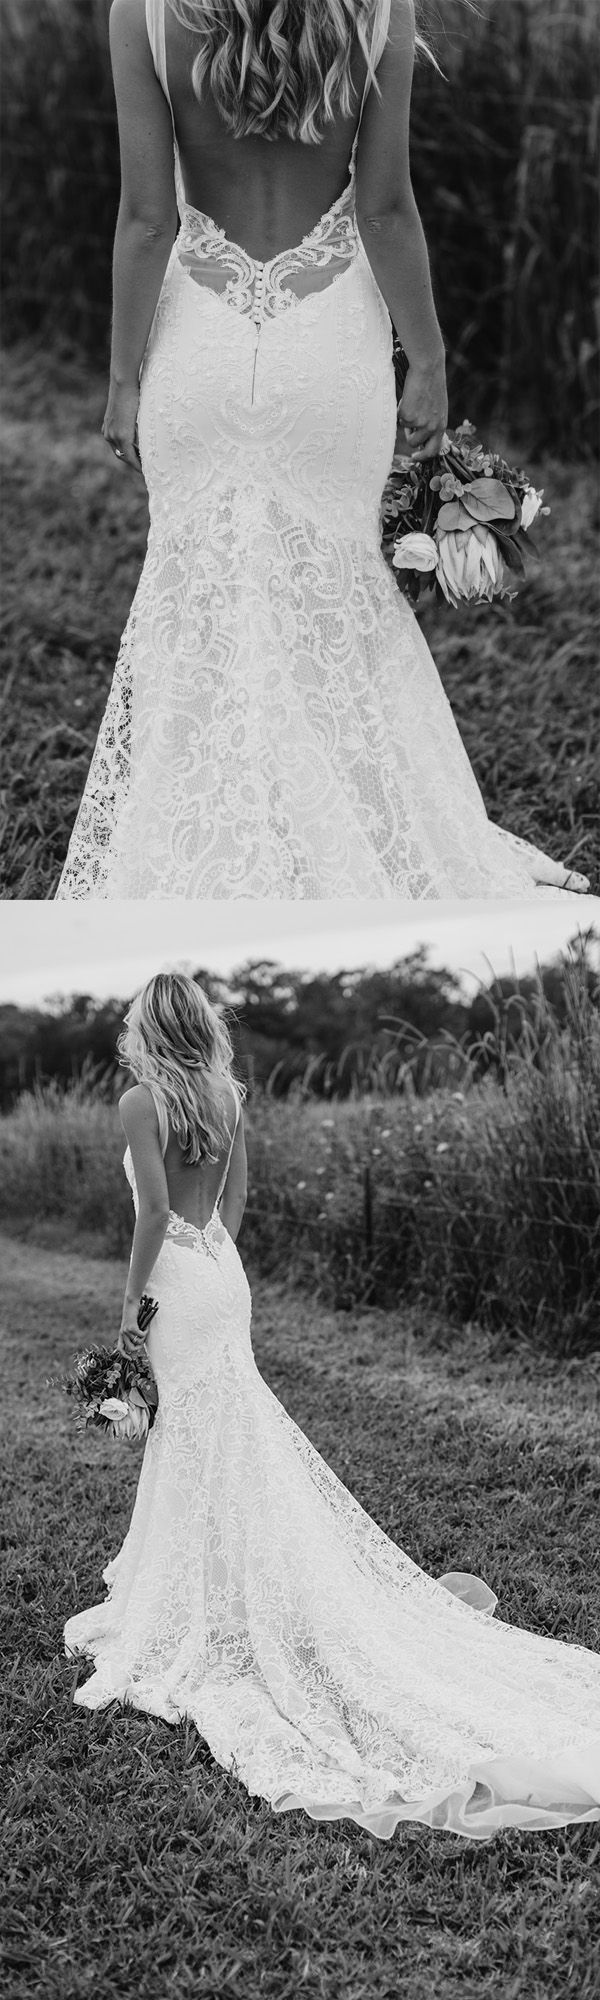 Beautiful Stunning low back wedding dress